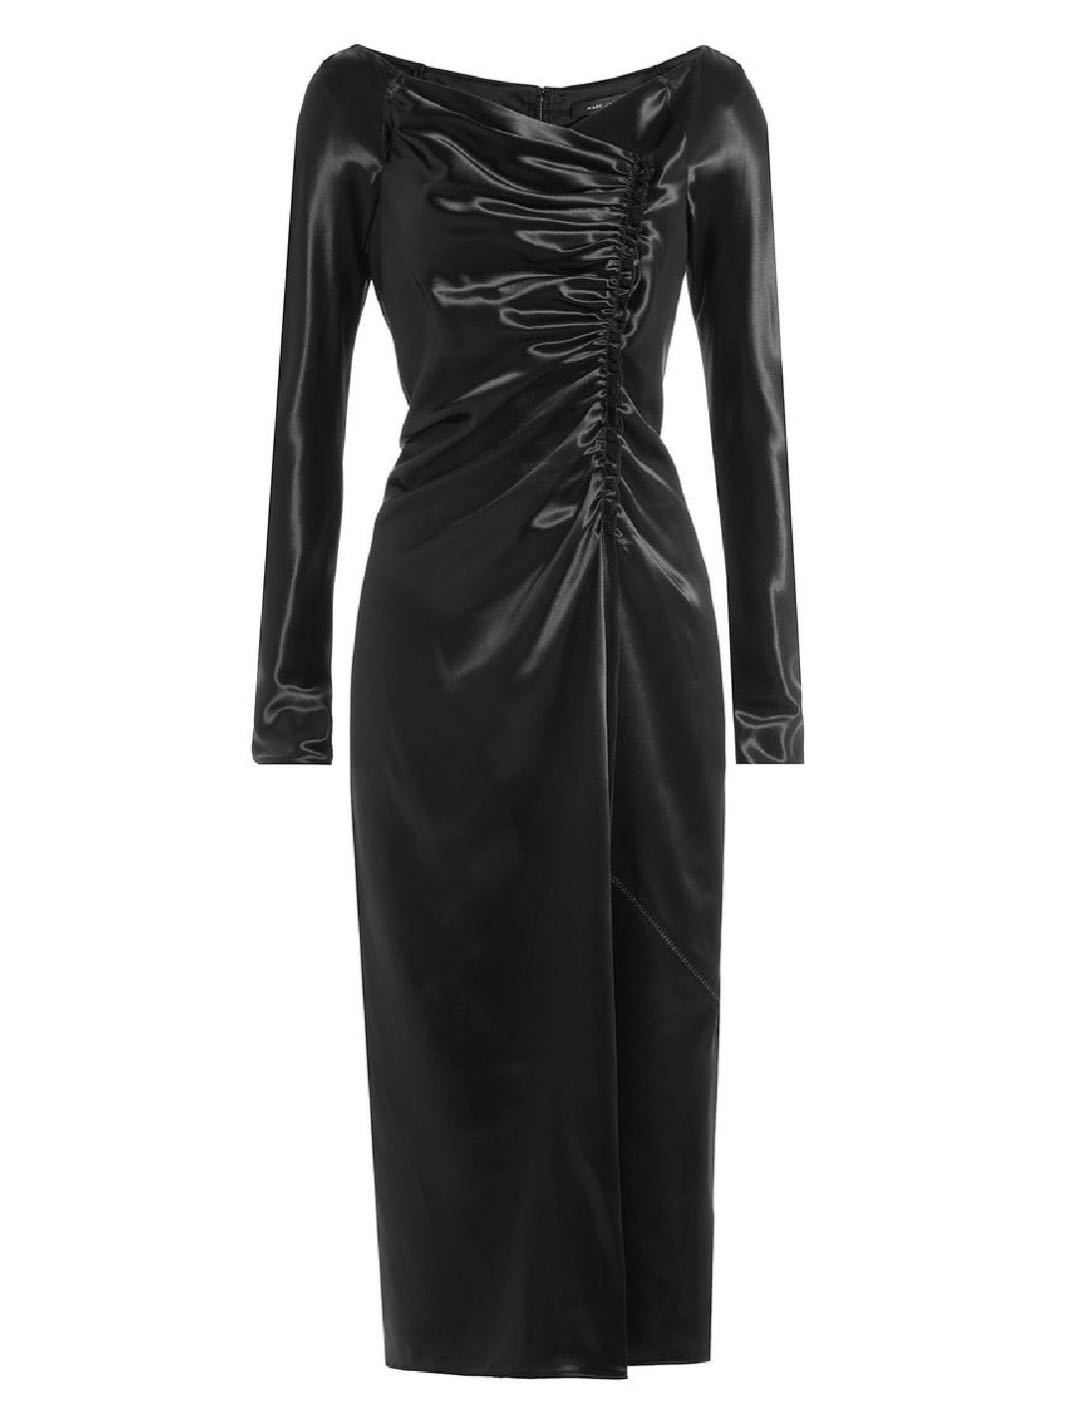 Gathered Satin Midi Dress - The Bobby Boga